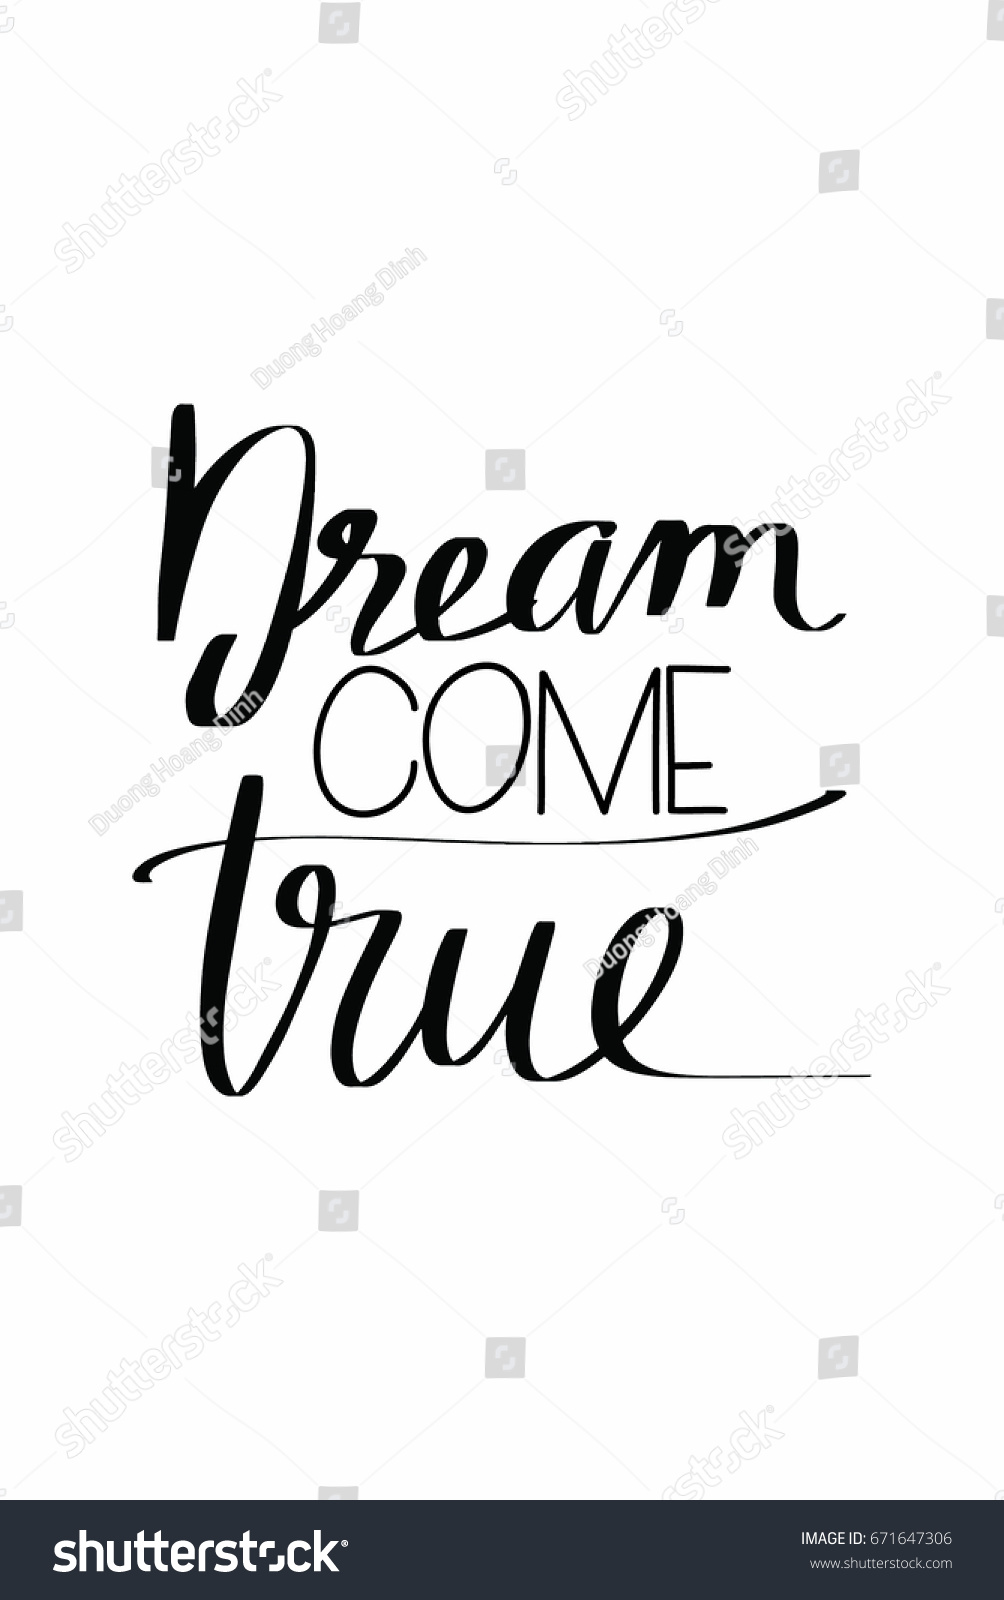 Lettering quotes motivation about life quote stock vector lettering quotes motivation about life quote calligraphy inspirational quote dream come true altavistaventures Image collections